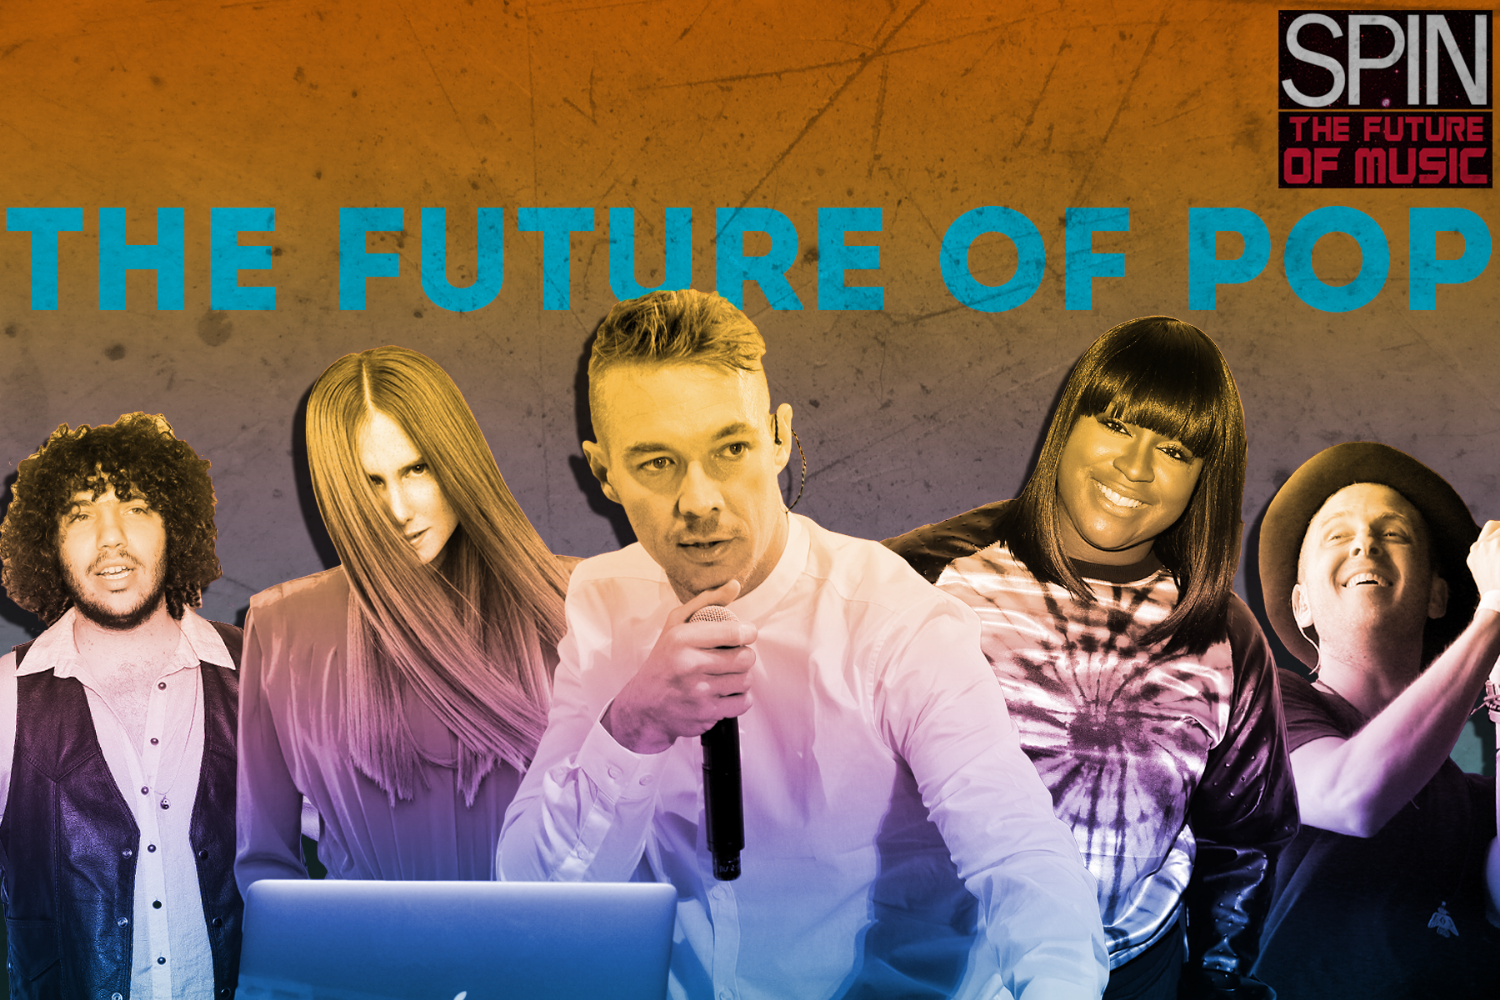 Today's Top Pop Producers Look Ahead to the Future of Music